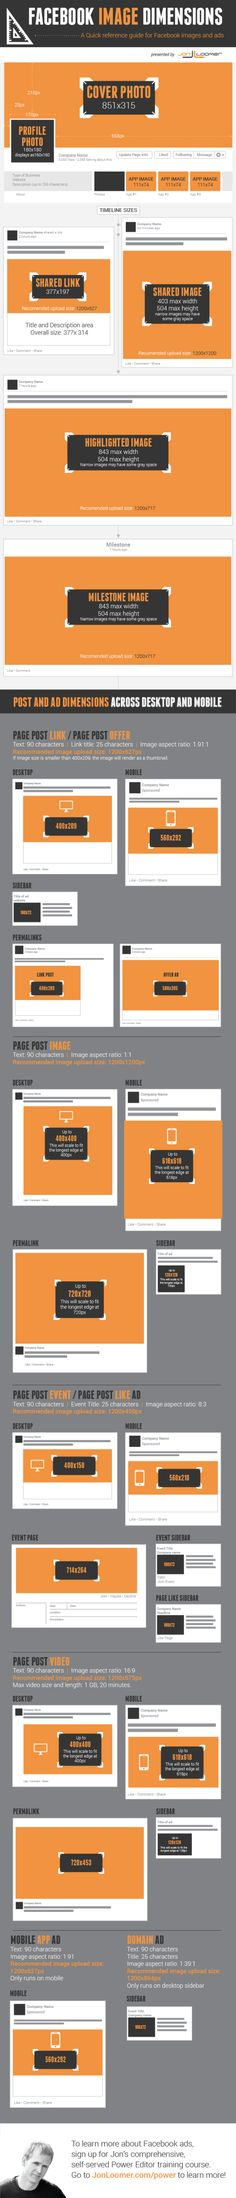 taille-optimale-images-facebook